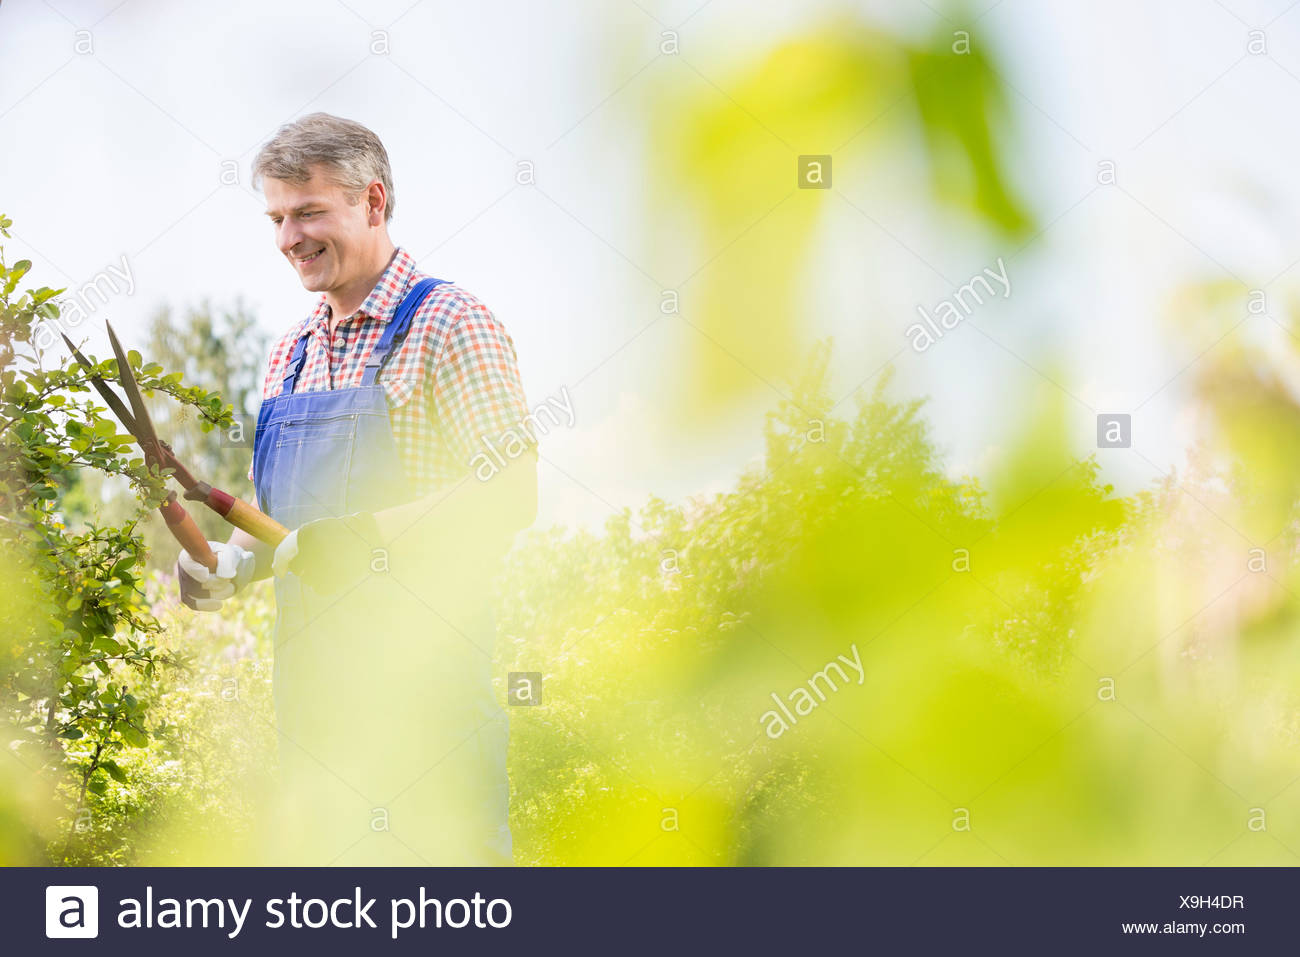 Smiling gardener trimming tree branches at plant nursery - Stock Image